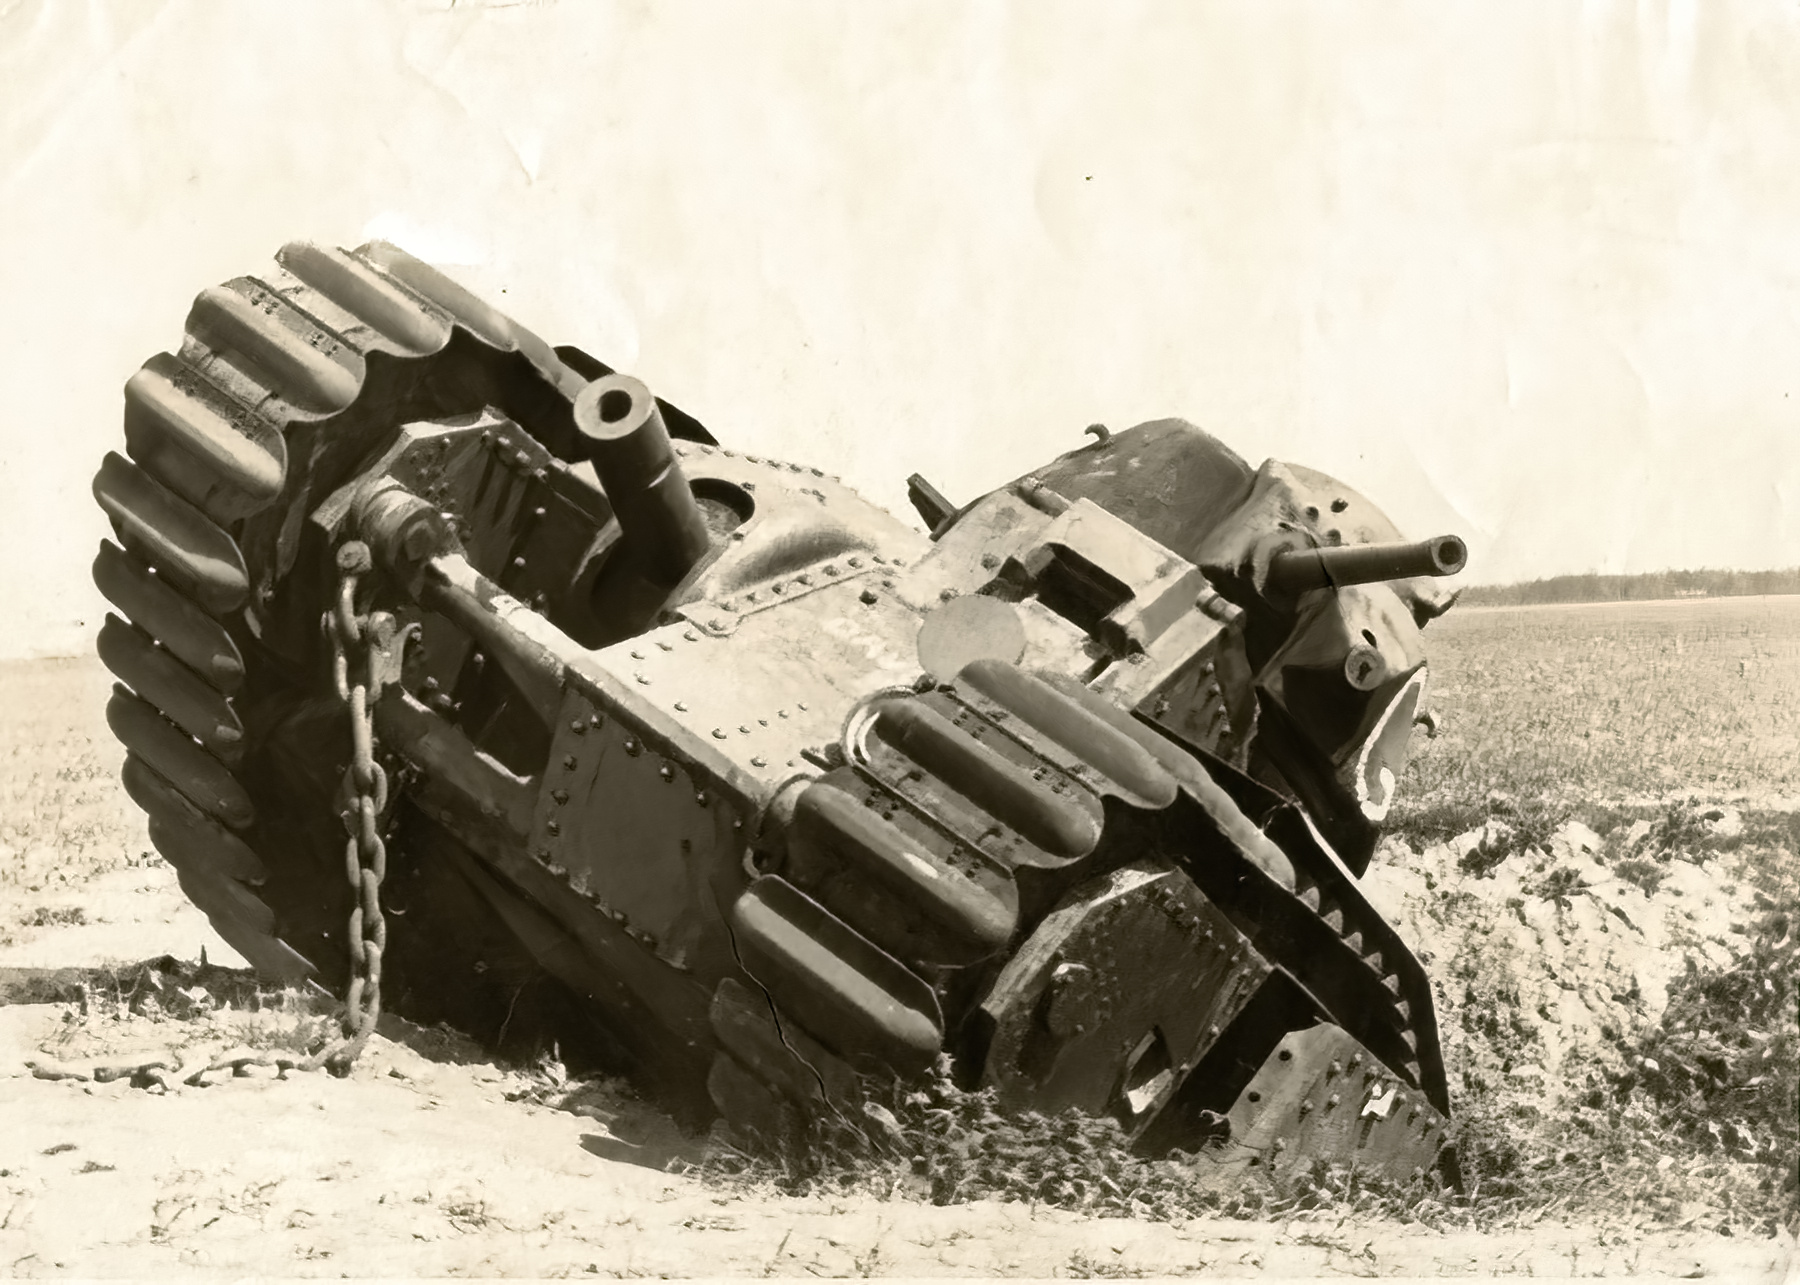 French Army Renault Char B1 White G abandoned during the battle of France 1940 ebay 01